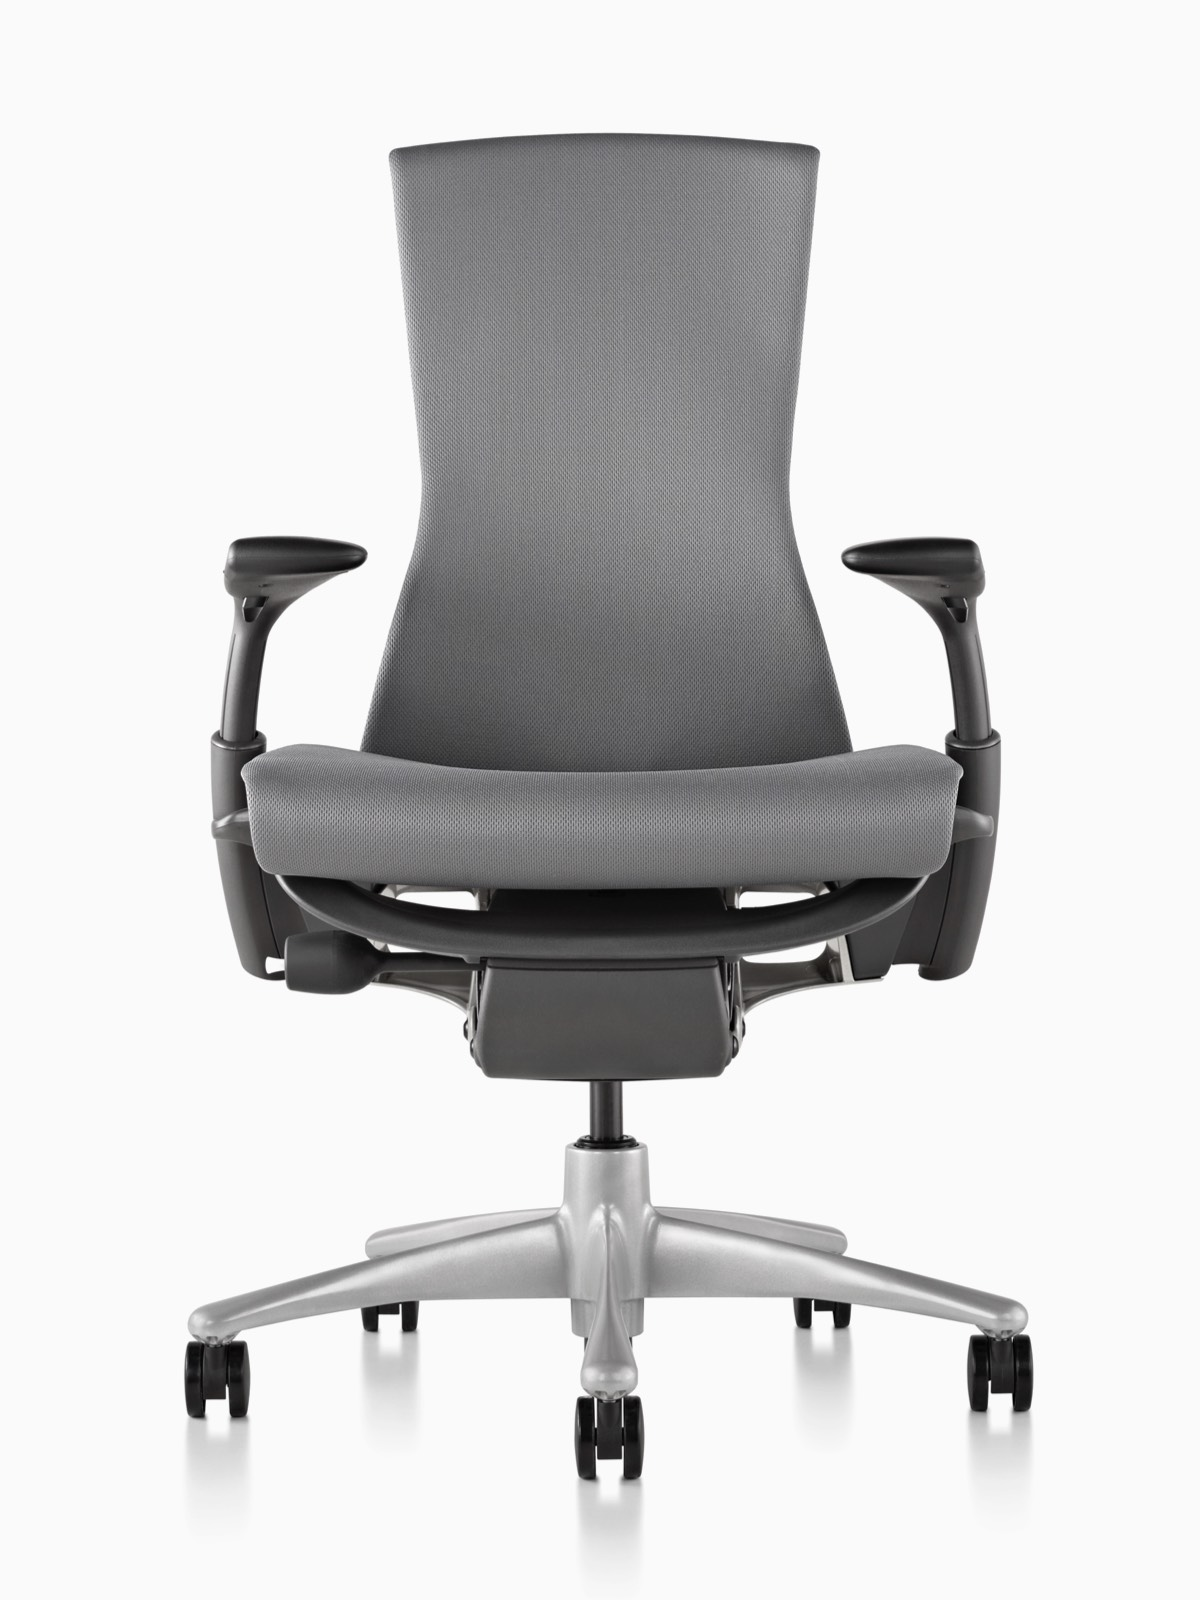 Full front view of a light gray Embody office chair with black armpads.